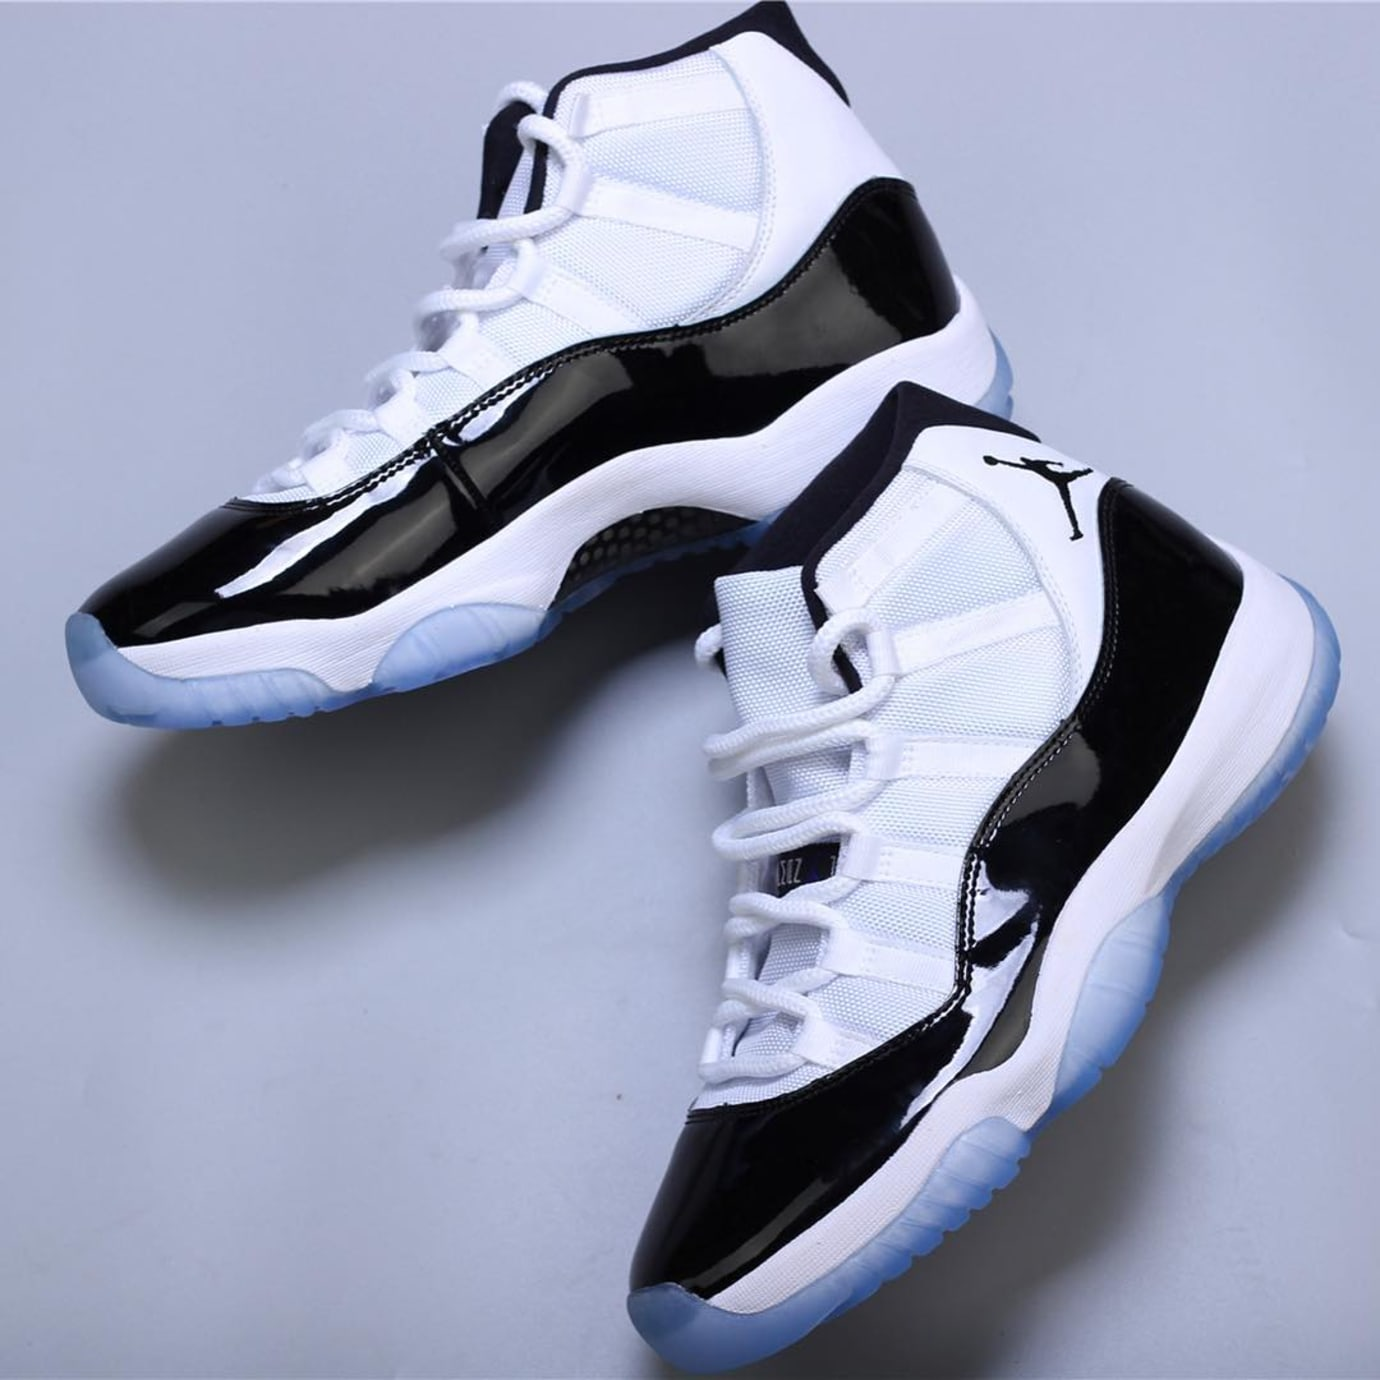 d227ac61712690 Image via hanzuying · Air Jordan 11 XI Concord 2018 Release Date 378037-100  Side